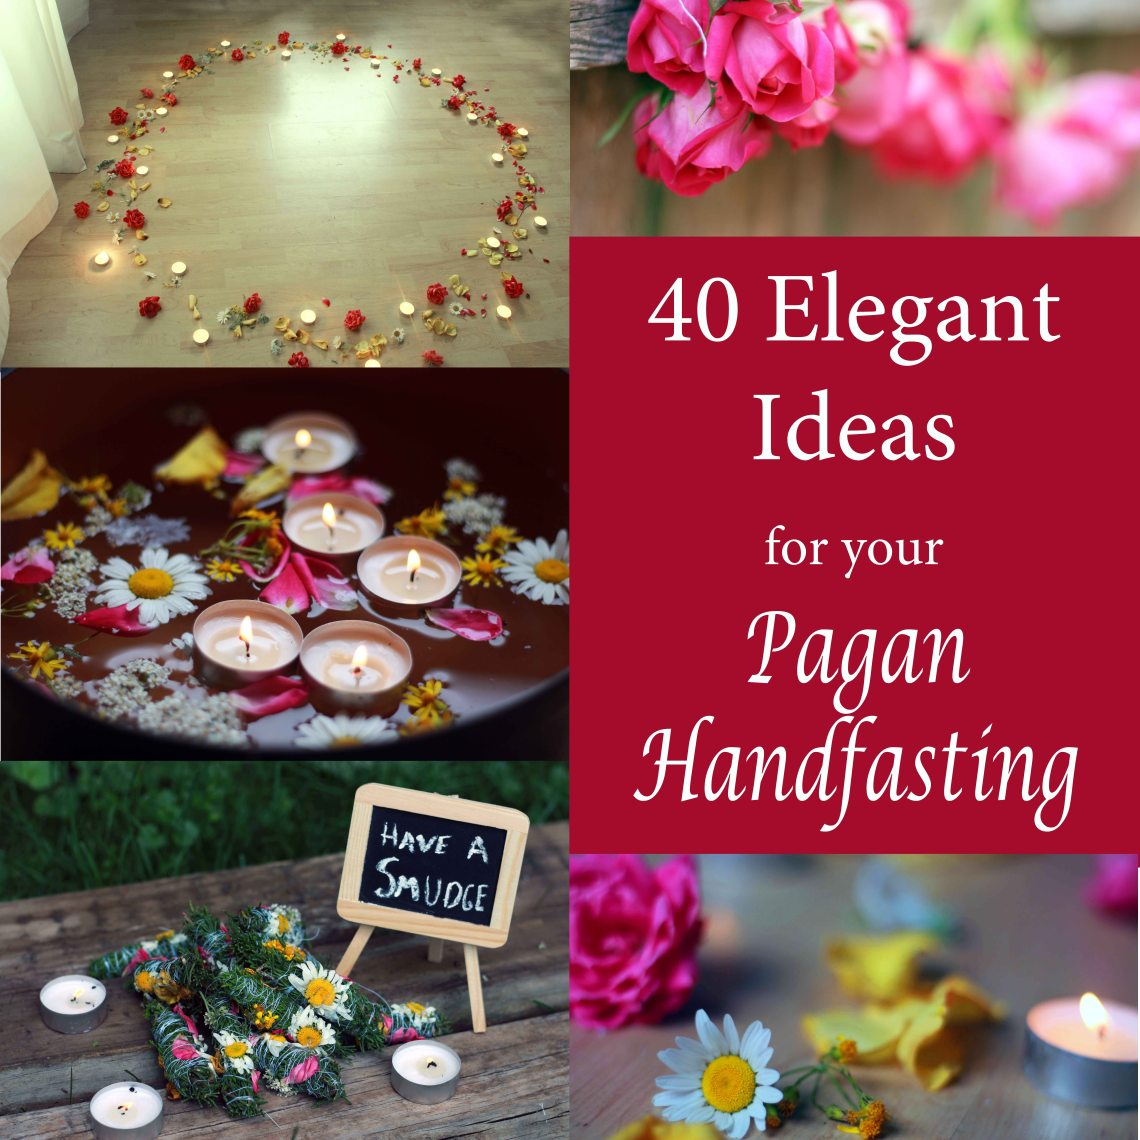 40 elegant ideas for your pagan handfasting